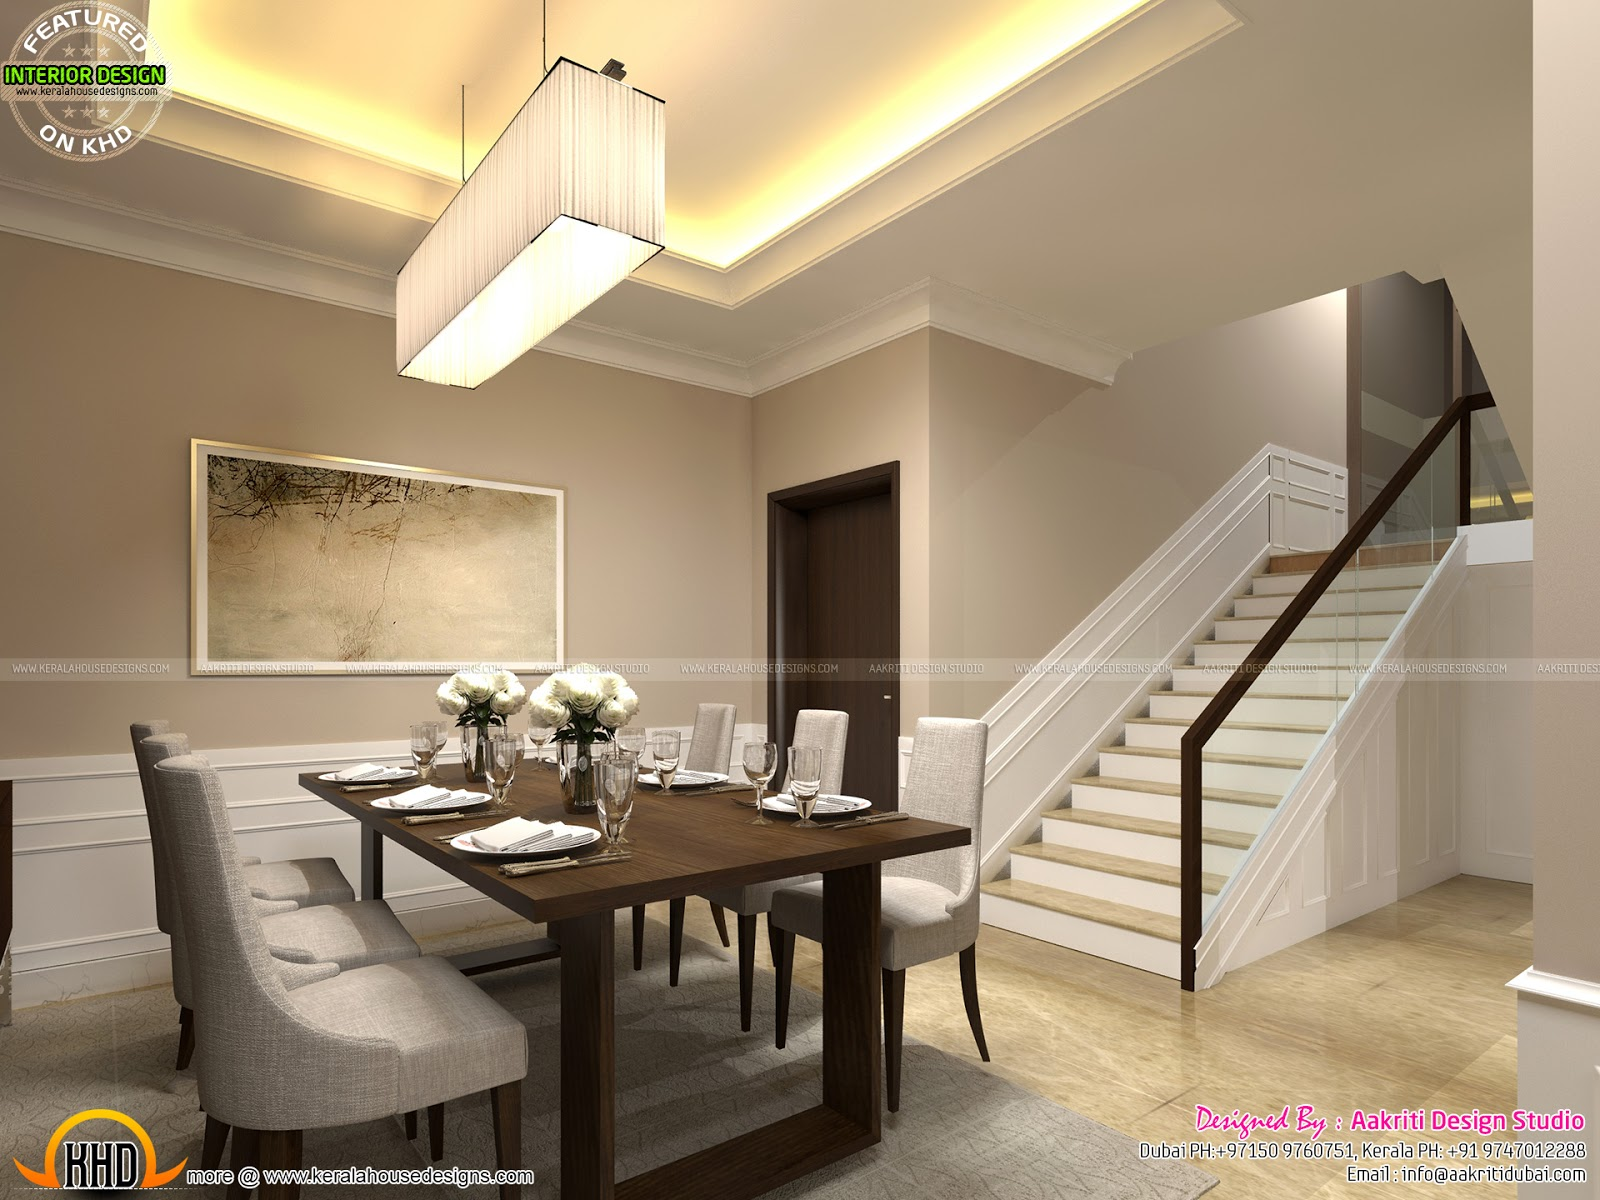 Classic style interior design for living room stair area for Home designers in my area